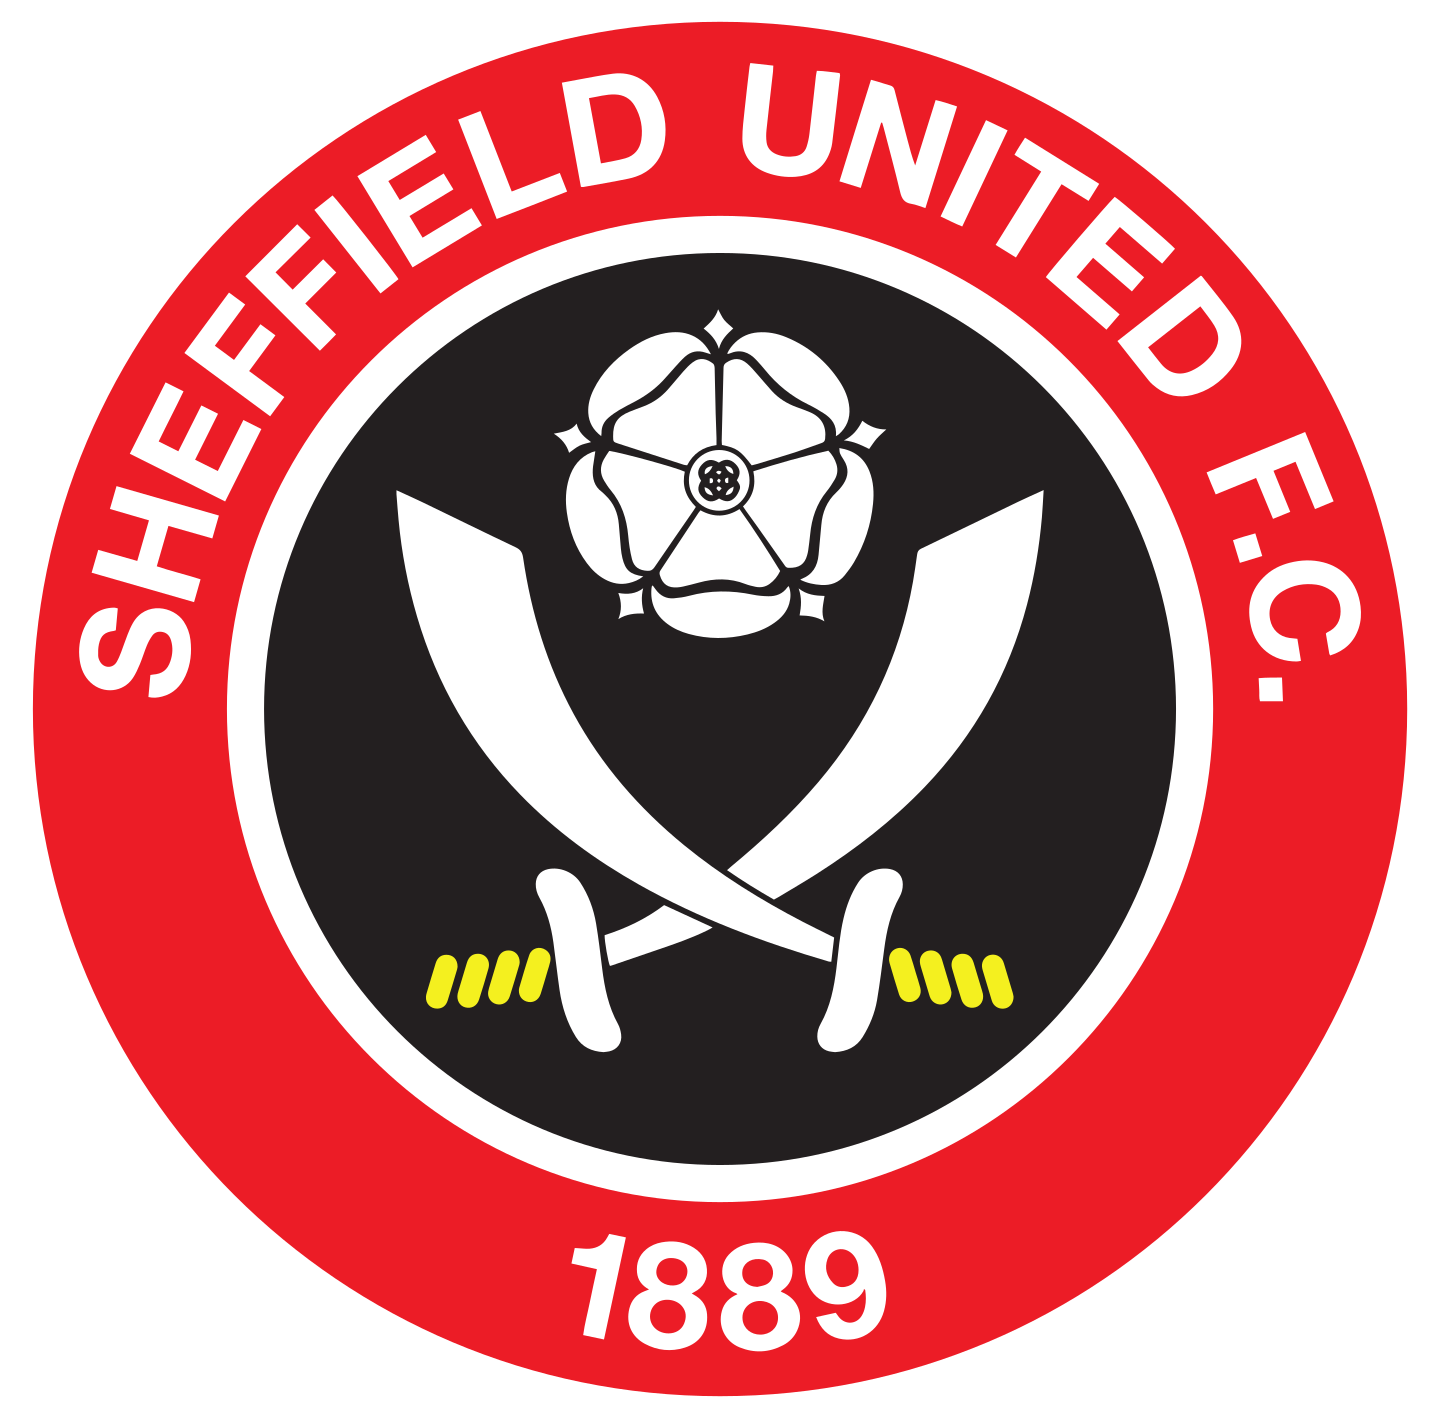 sheffield united logo 2 - Sheffield United FC Logo